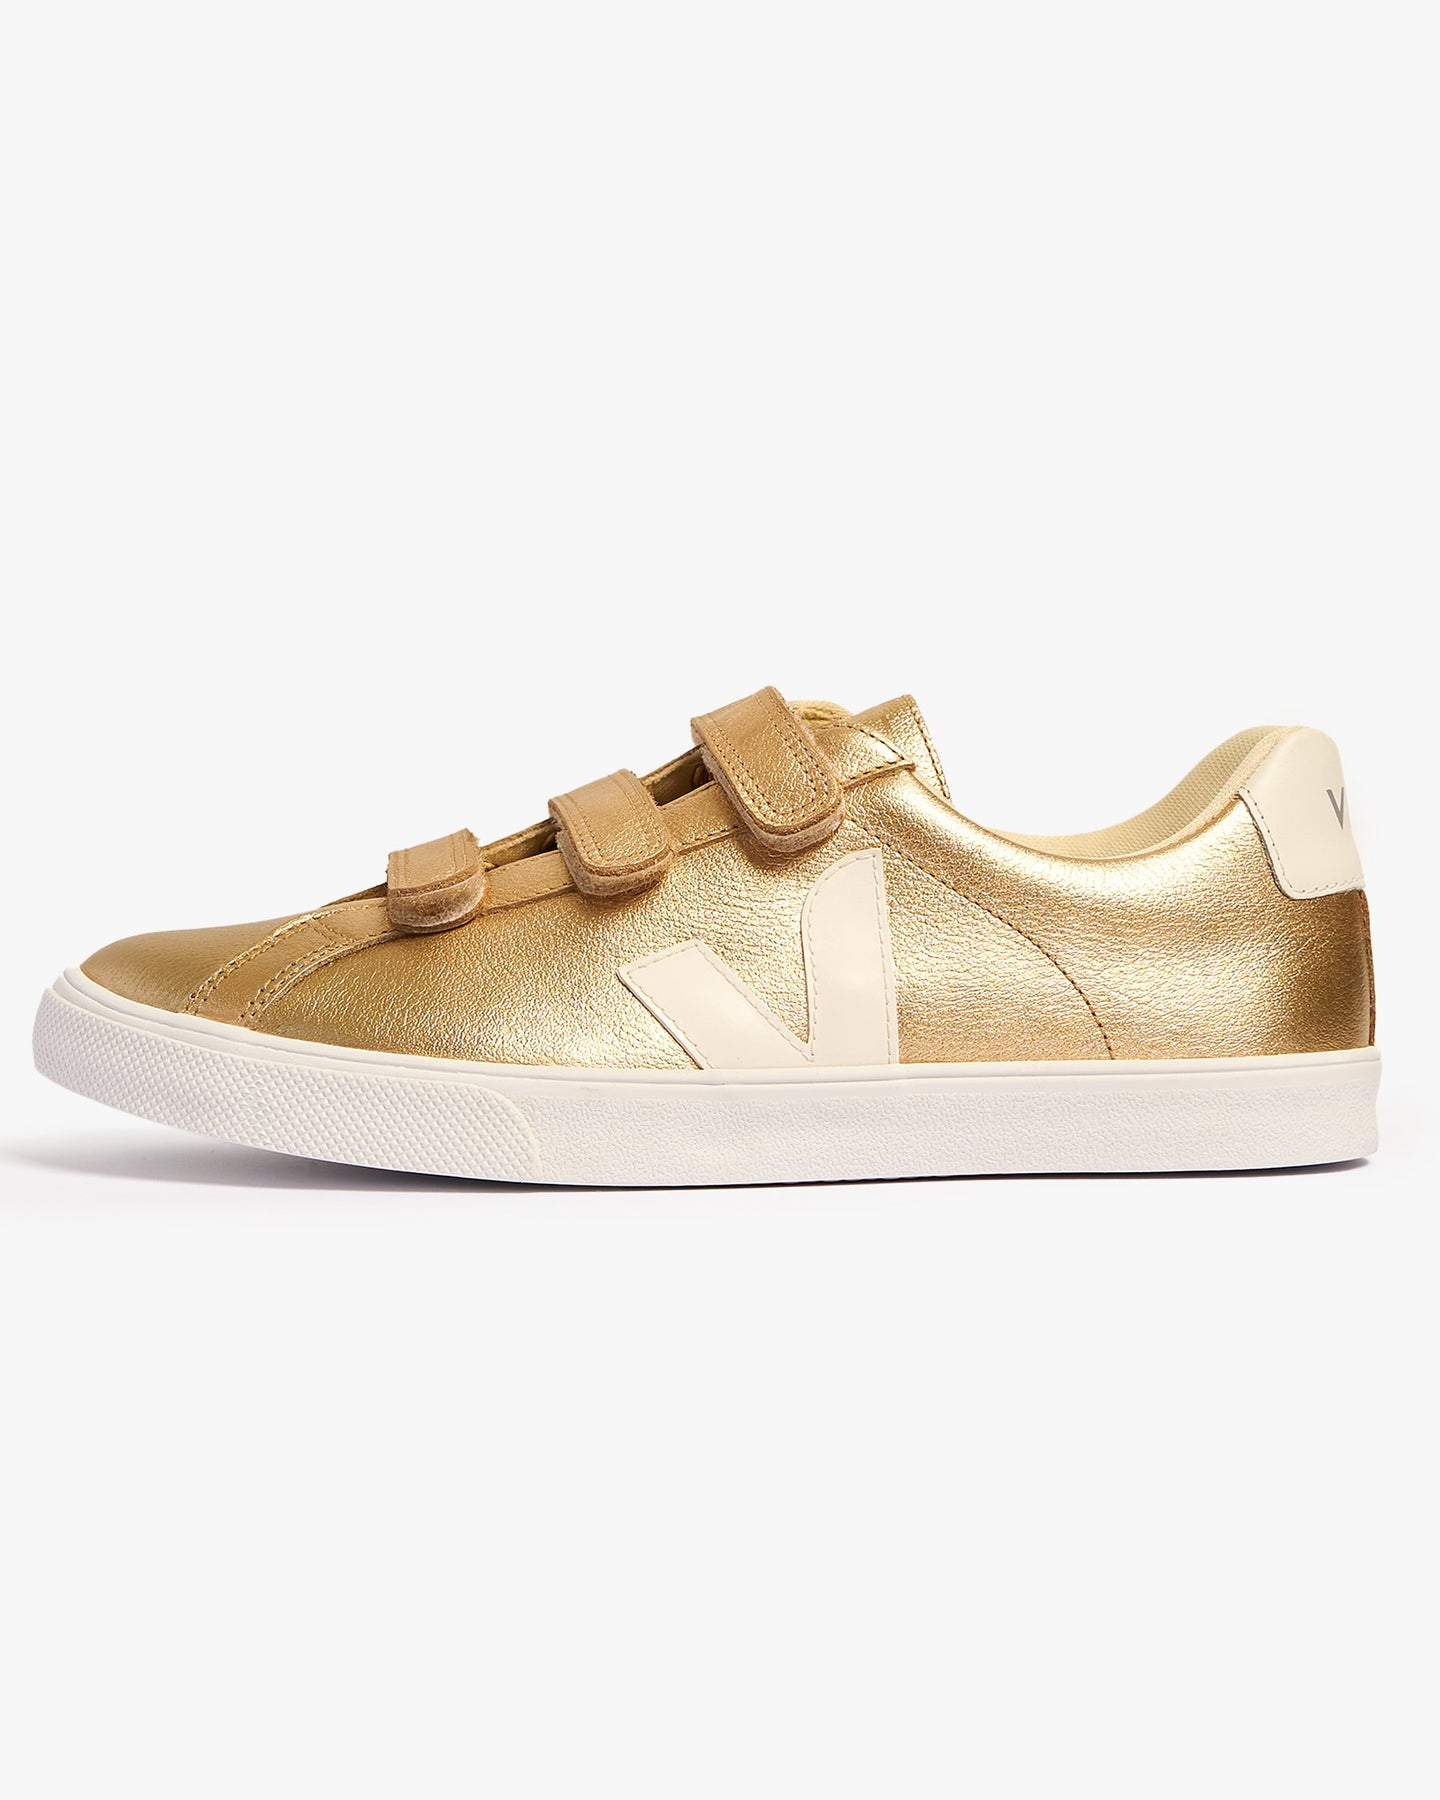 Veja Womens 3-Lock Leather Sneakers - Platine / White UK 4 ELW0224124 Veja Trainers